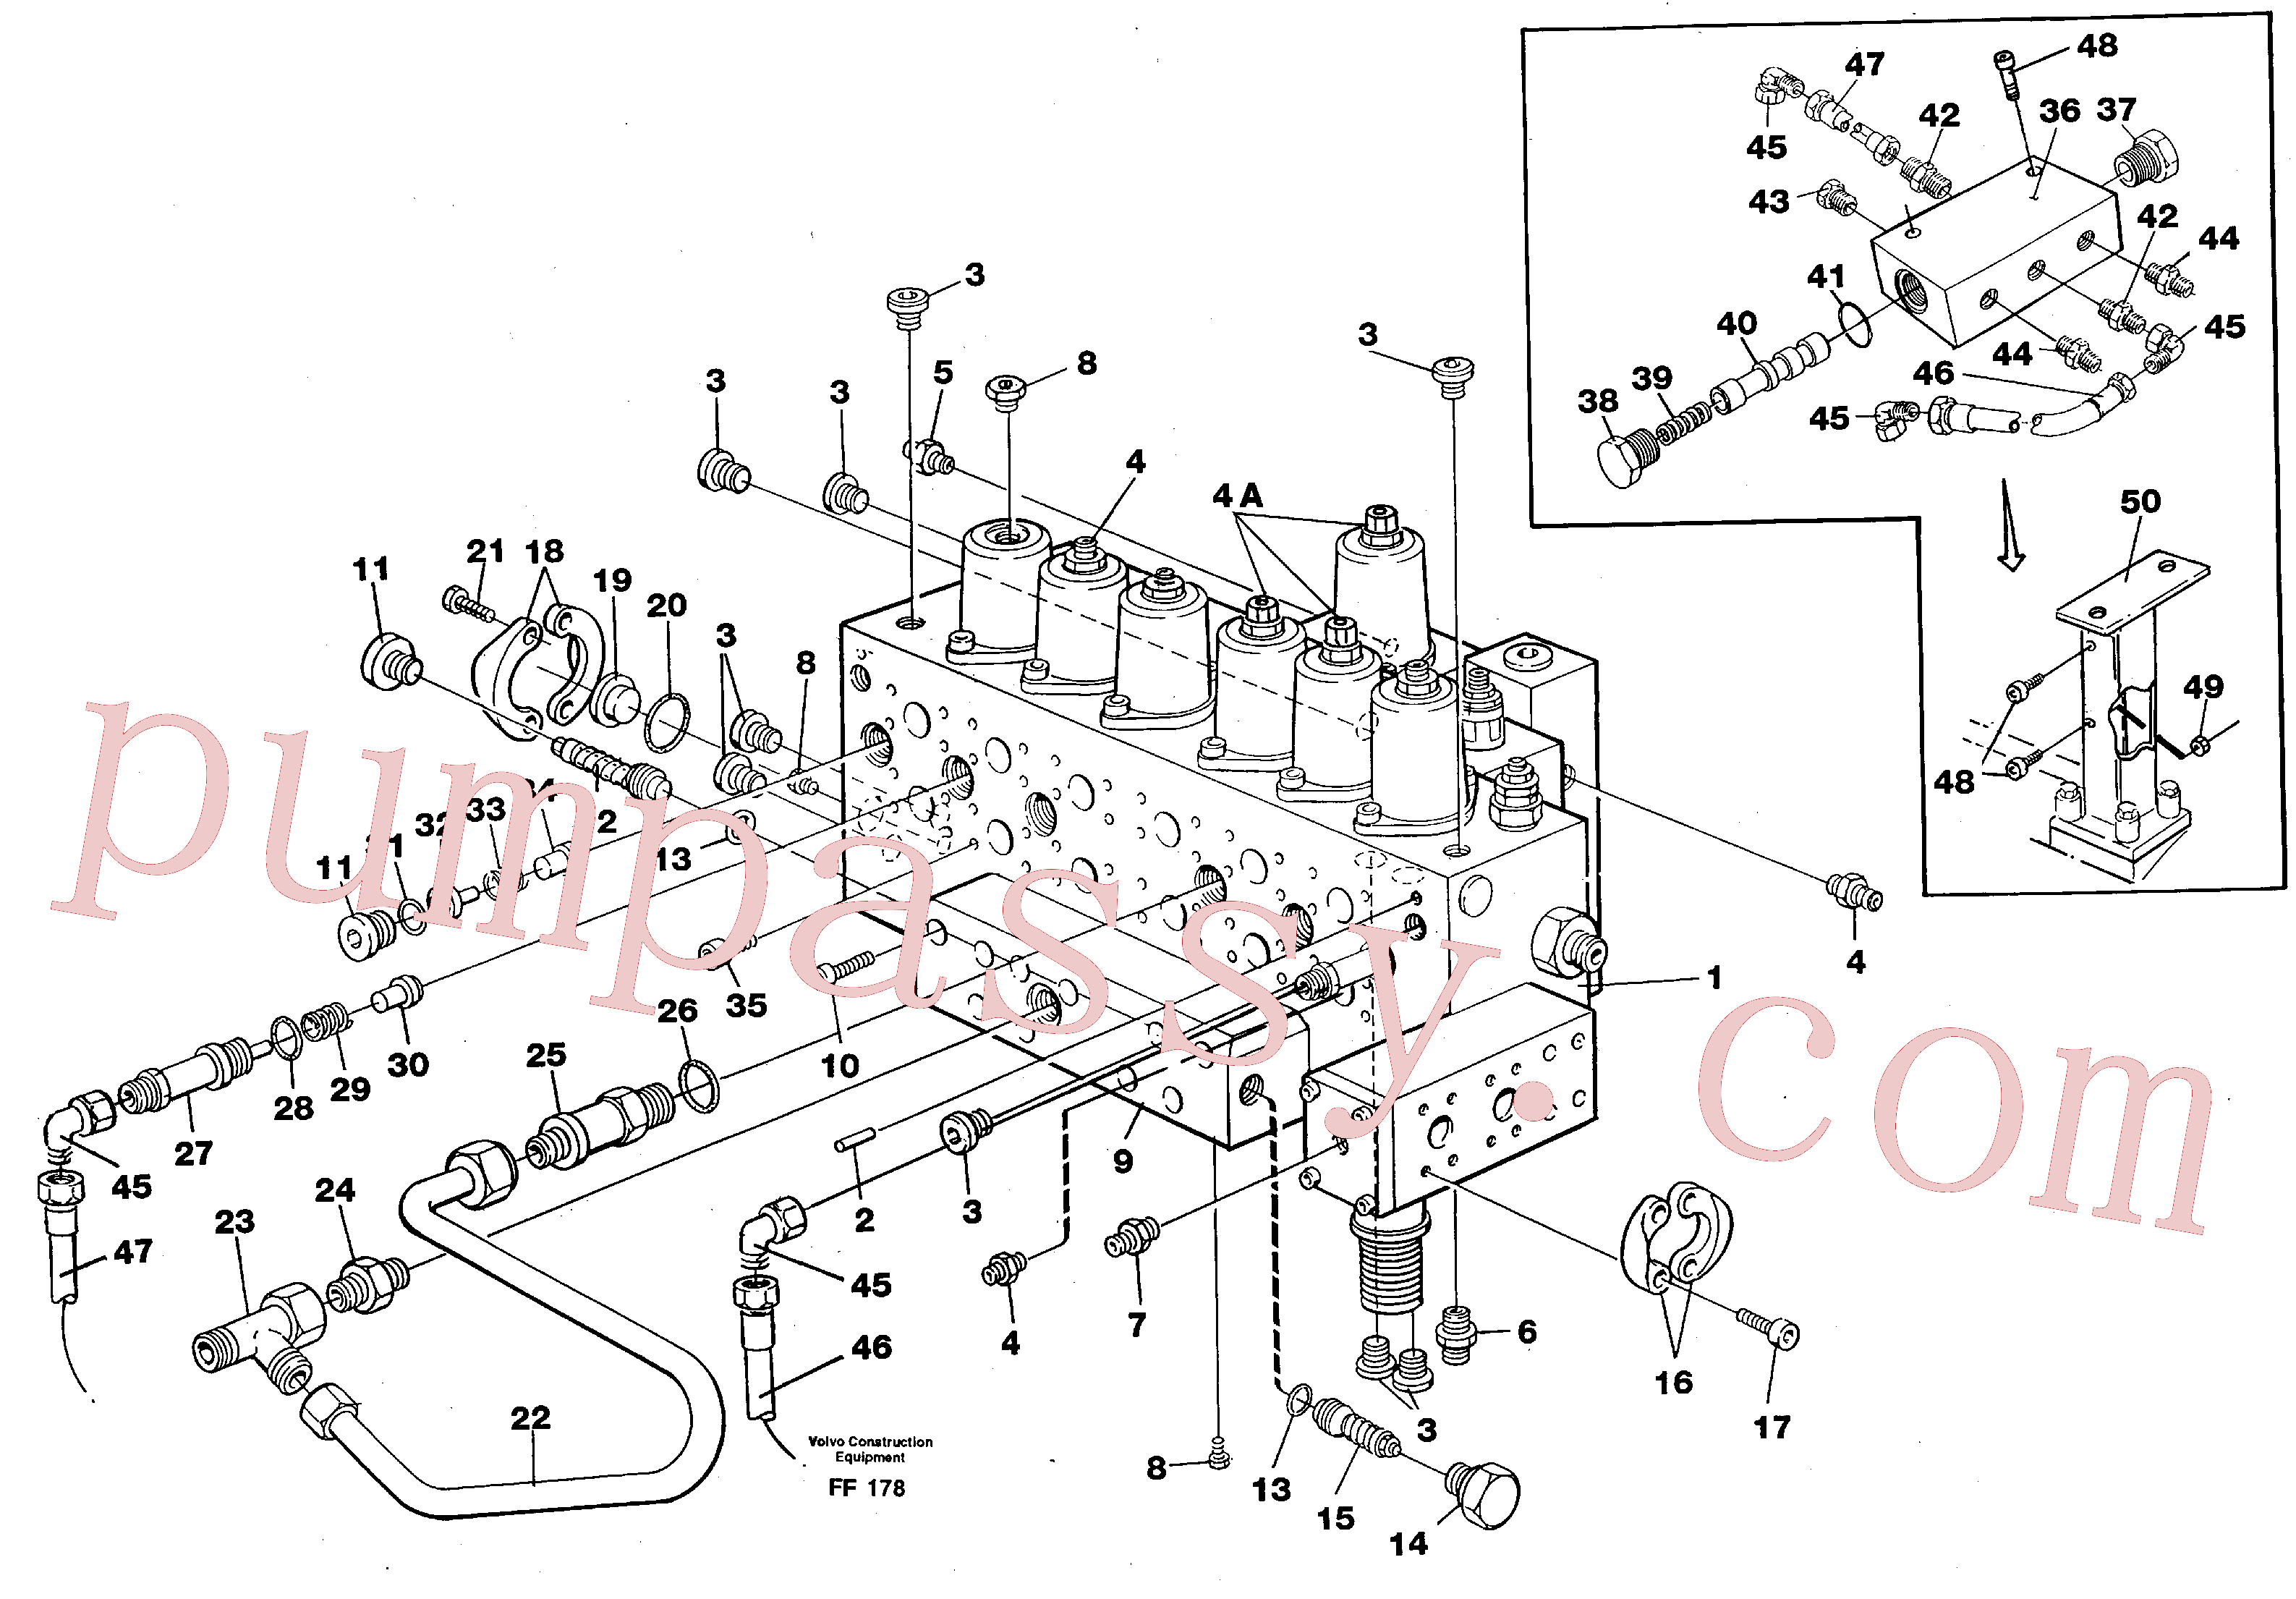 VOE990757 for Volvo Main valve assembly, tubes connections, assembly bloc(FF178 assembly)